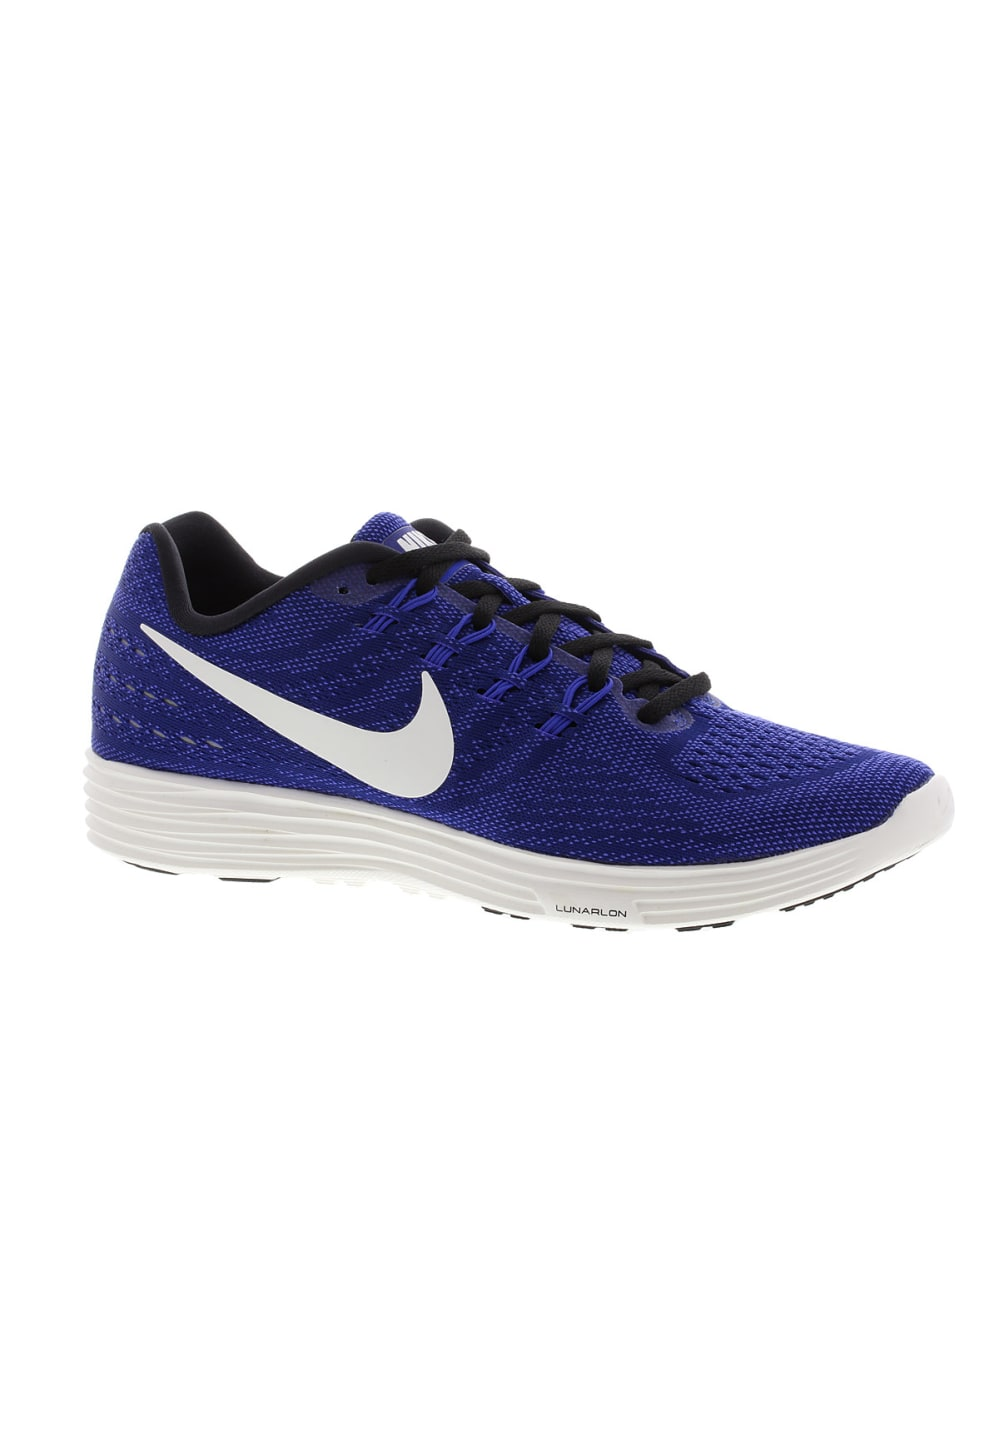 pretty nice 7f289 6caef ... Nike Lunartempo 2 - Running shoes for Men - Blue. Back to Overview. 1  2   3  4  5. Previous